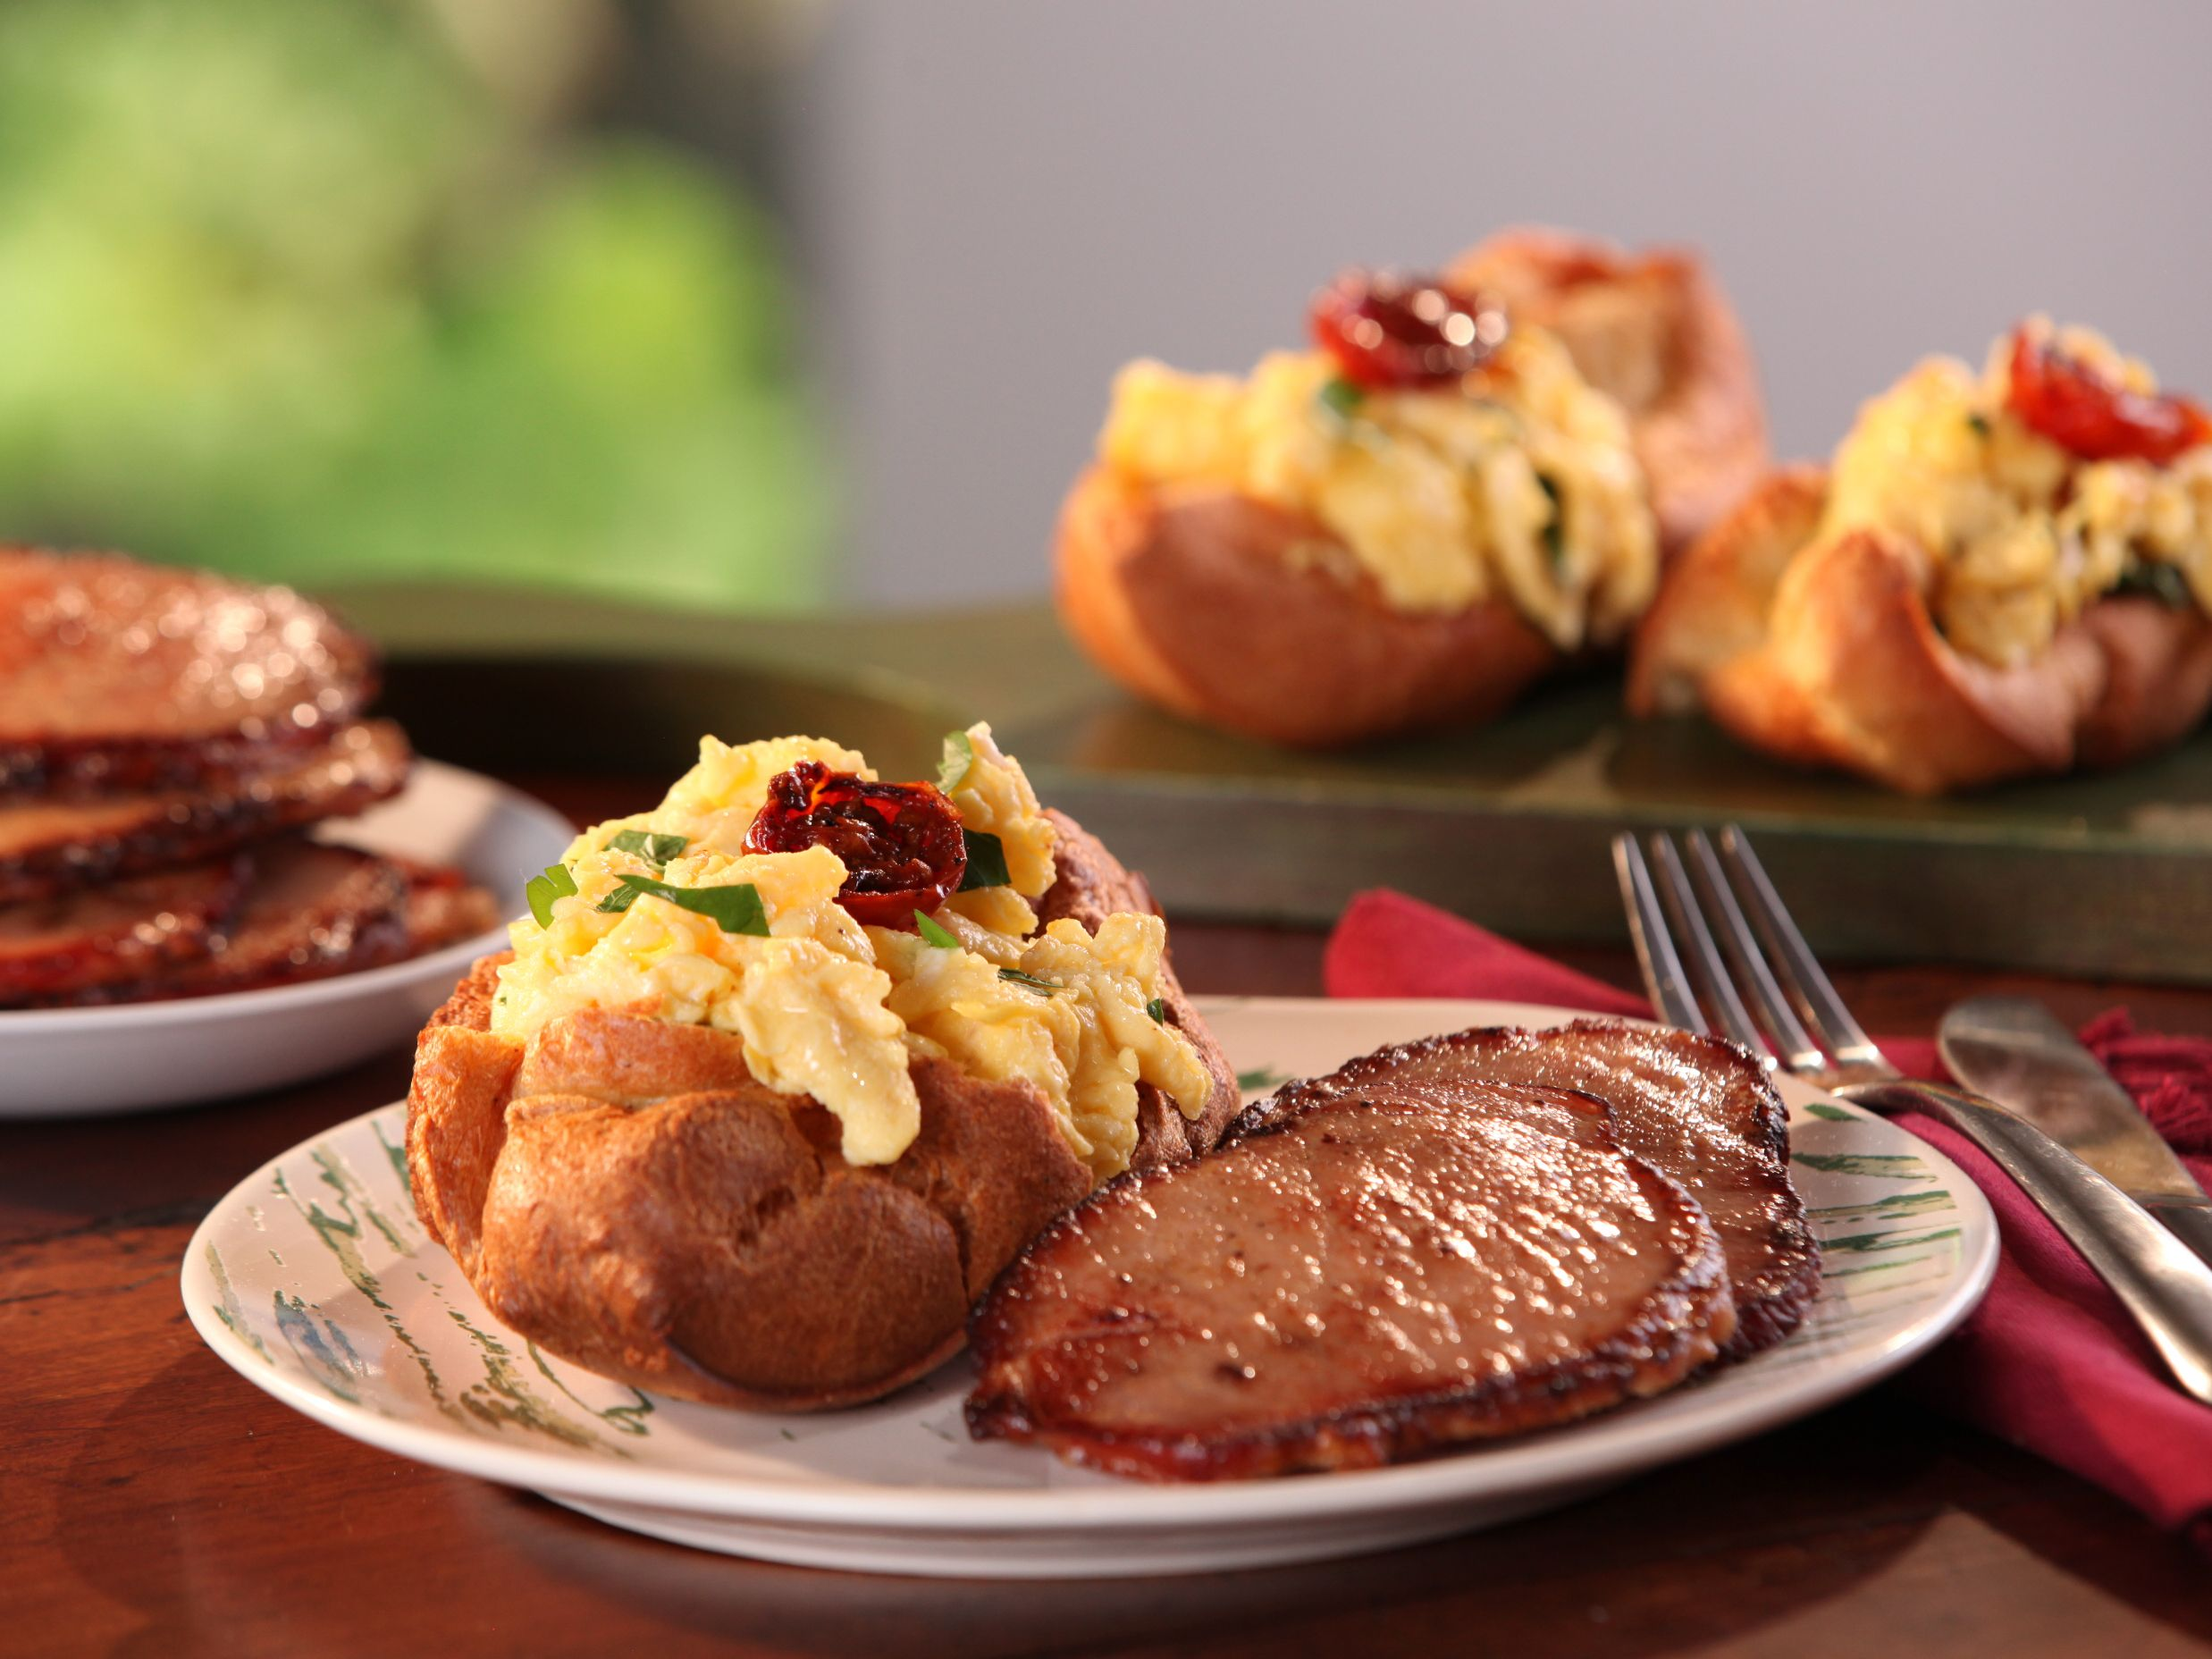 Black pepper popovers filled with vermont cheddar and herb scrambled black pepper popovers filled with vermont cheddar and herb scrambled eggs and maple mustard glazed canadian bacon recipe canadian bacon forumfinder Choice Image